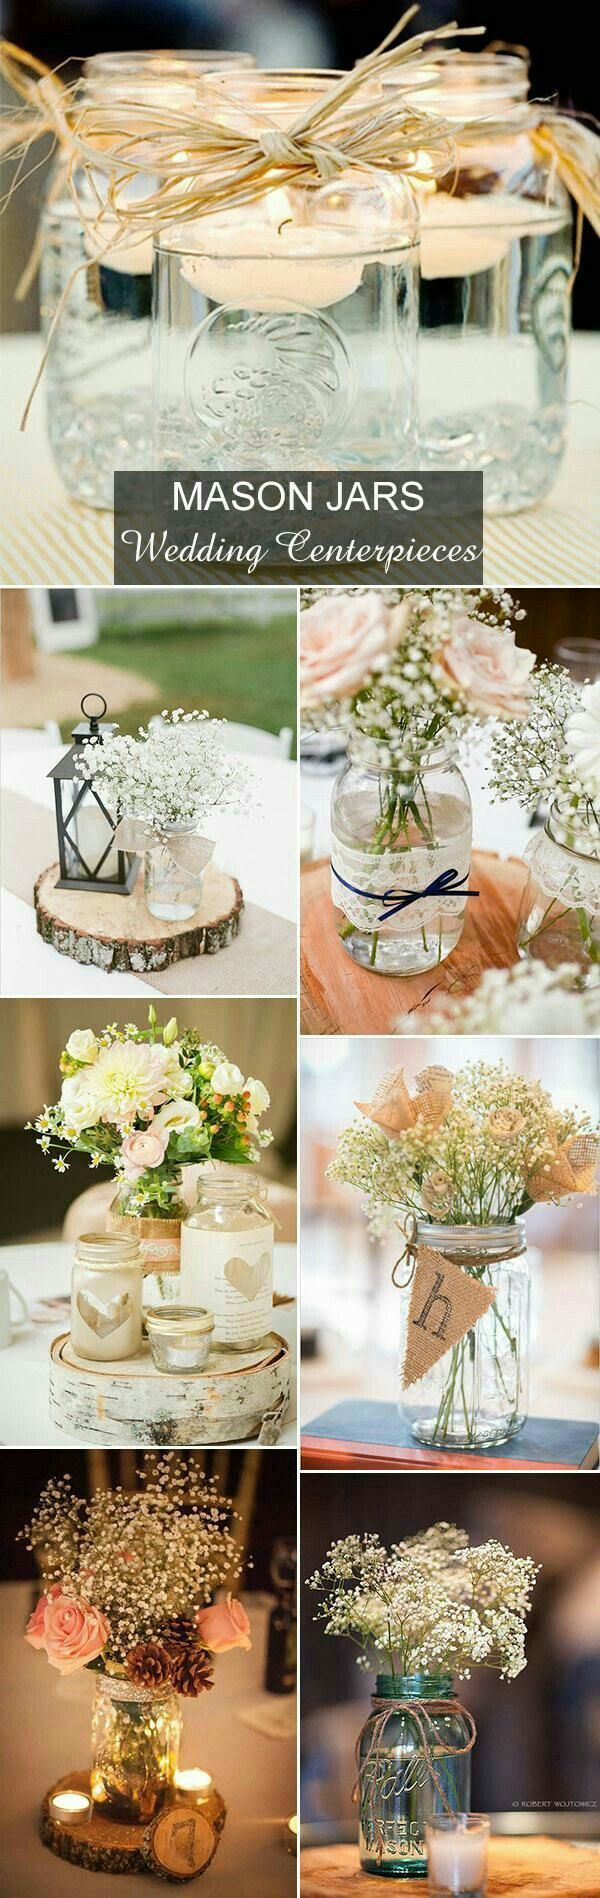 Inside wedding decoration ideas  Simple simple simple Mason jars no twine with babyus breath